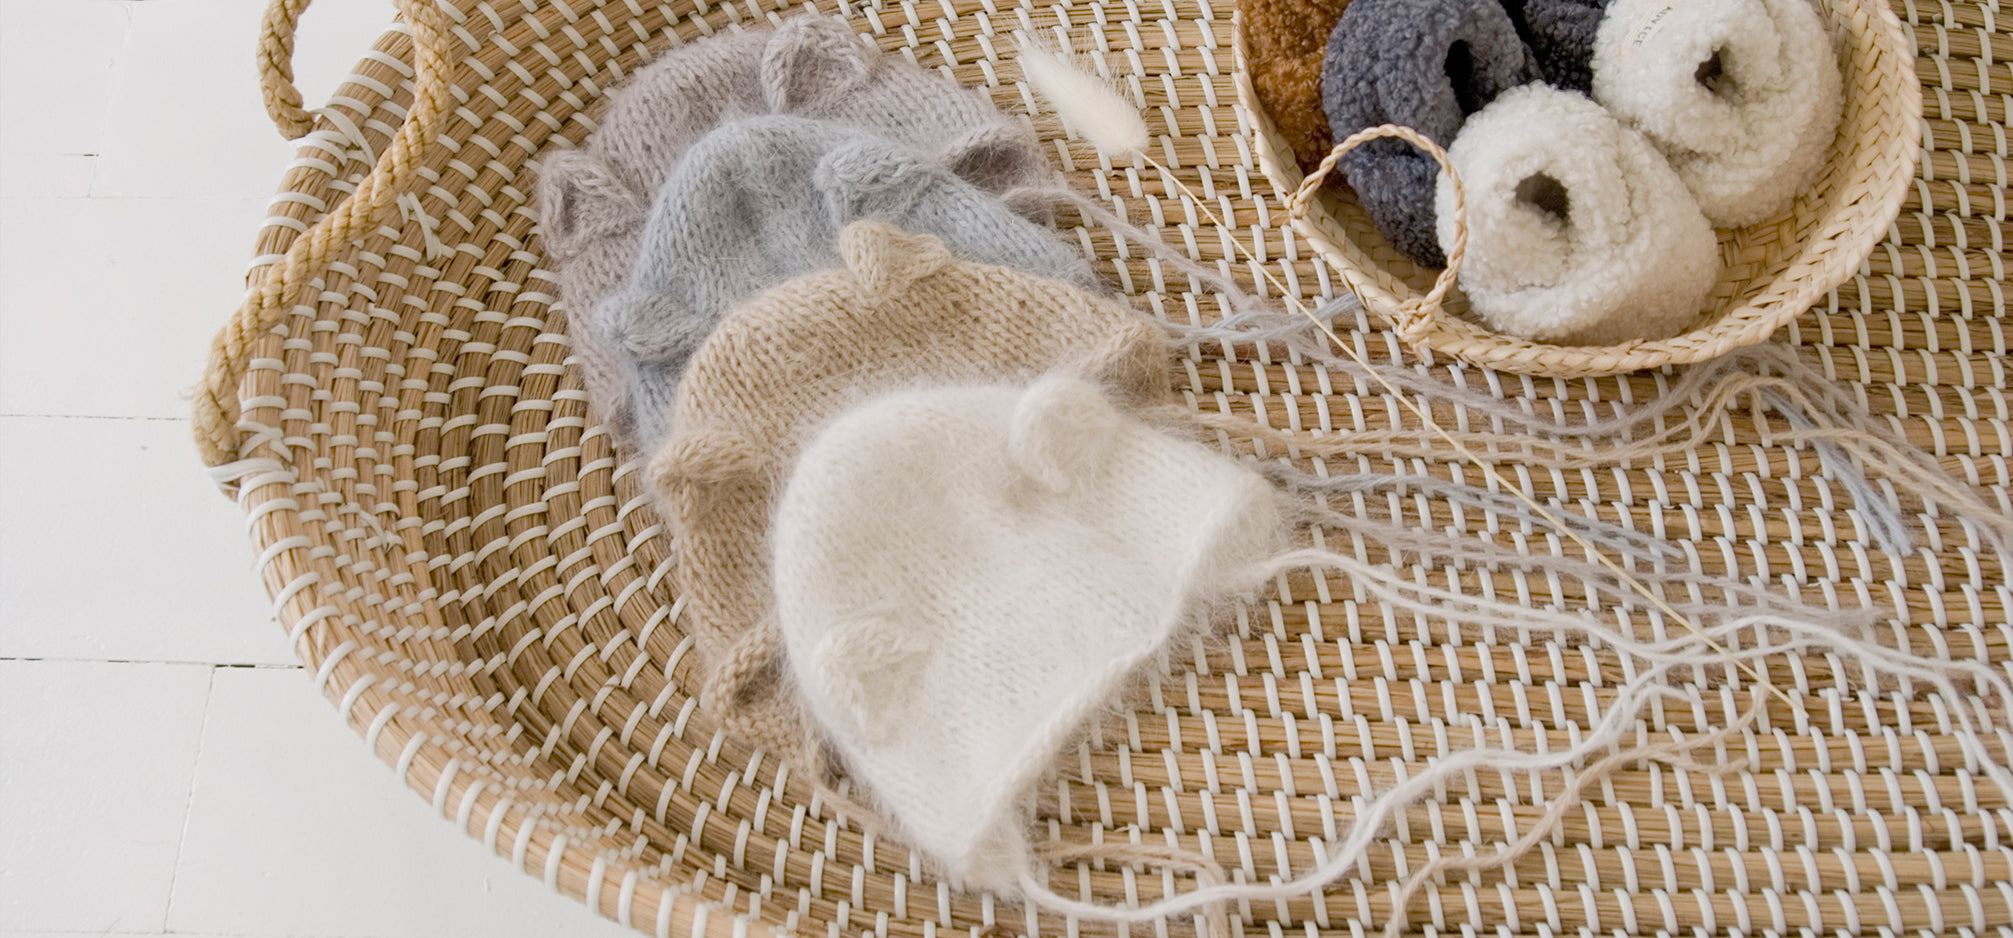 Knit baby bonnets and booties in a seagrass changing basket.